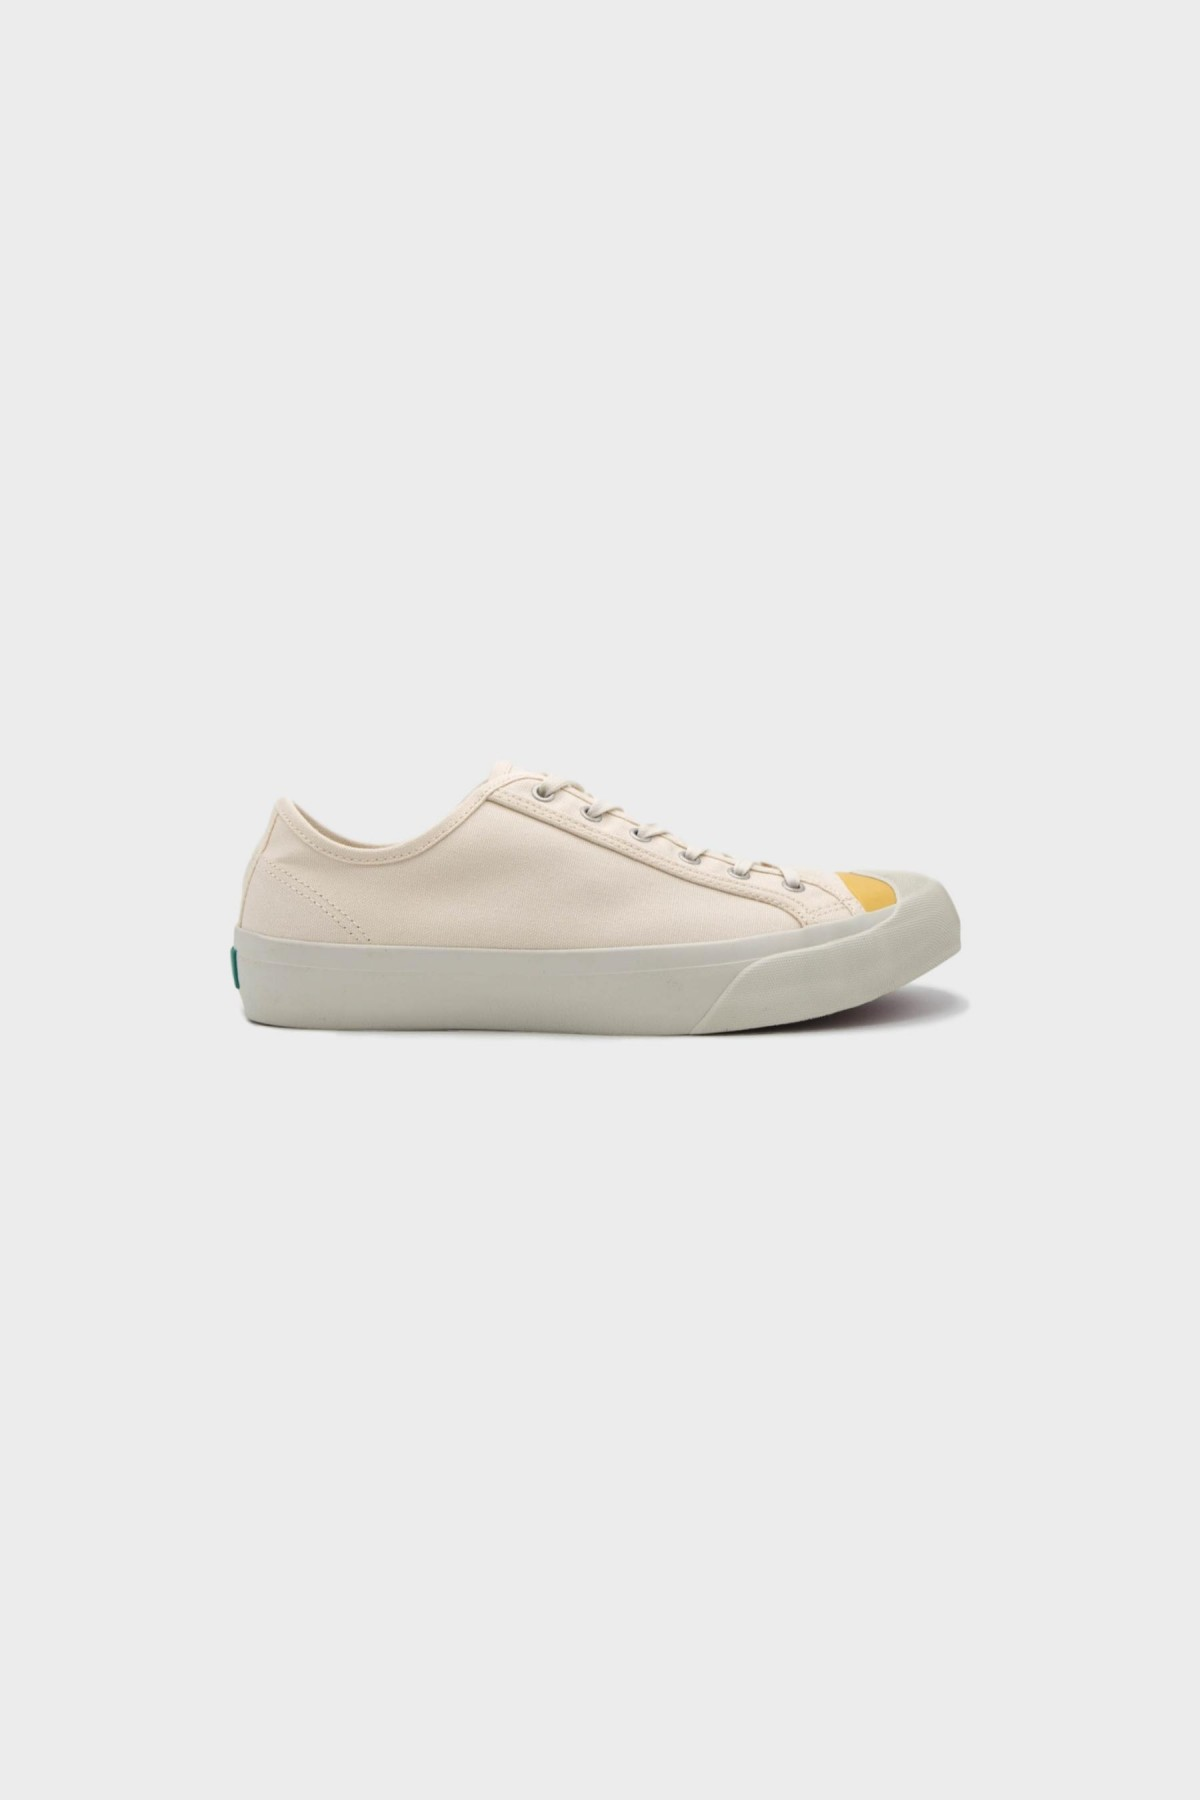 YMC You Must Create Wing Tip Trainer in Ecru / Yellow